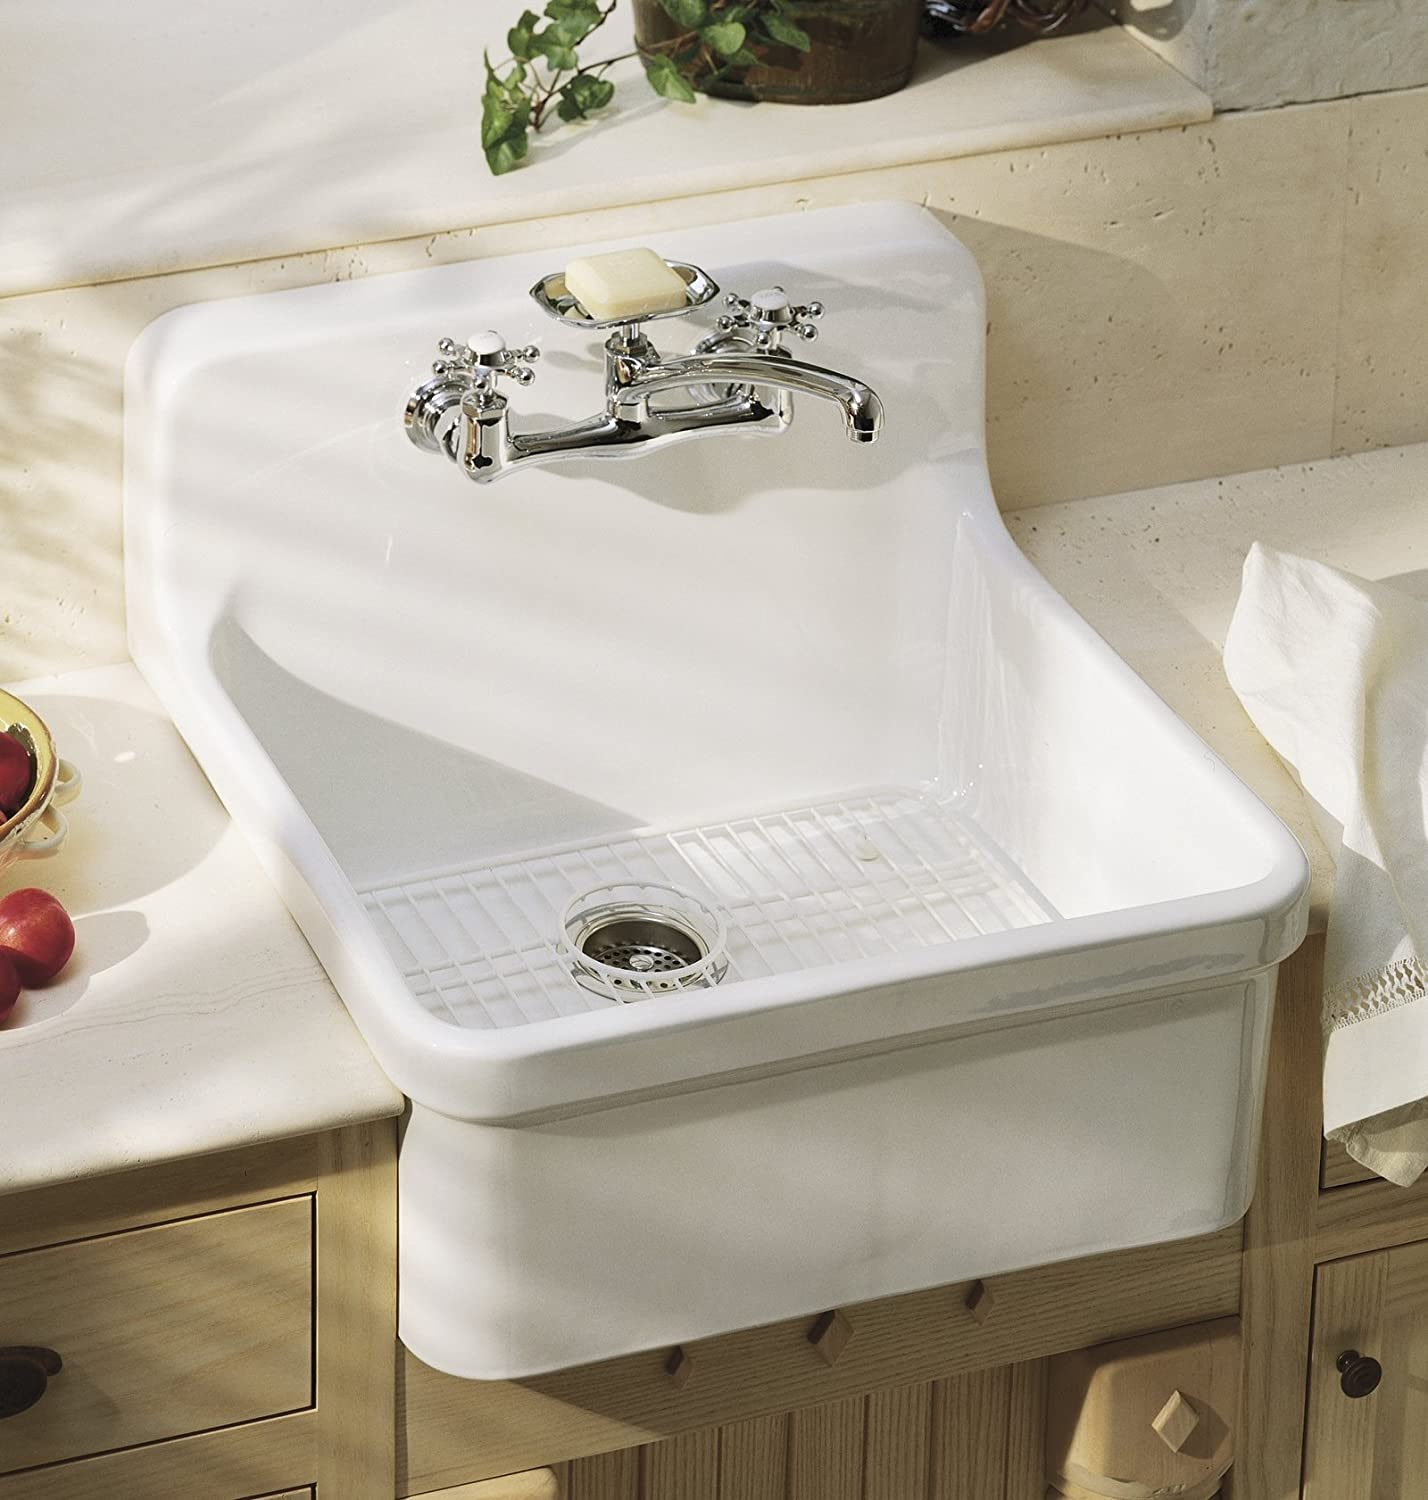 KOHLER K 149 3 CP Antique Wall Mount Kitchen Sink Faucet, Polished Chrome    Touch On Kitchen Sink Faucets   Amazon.com